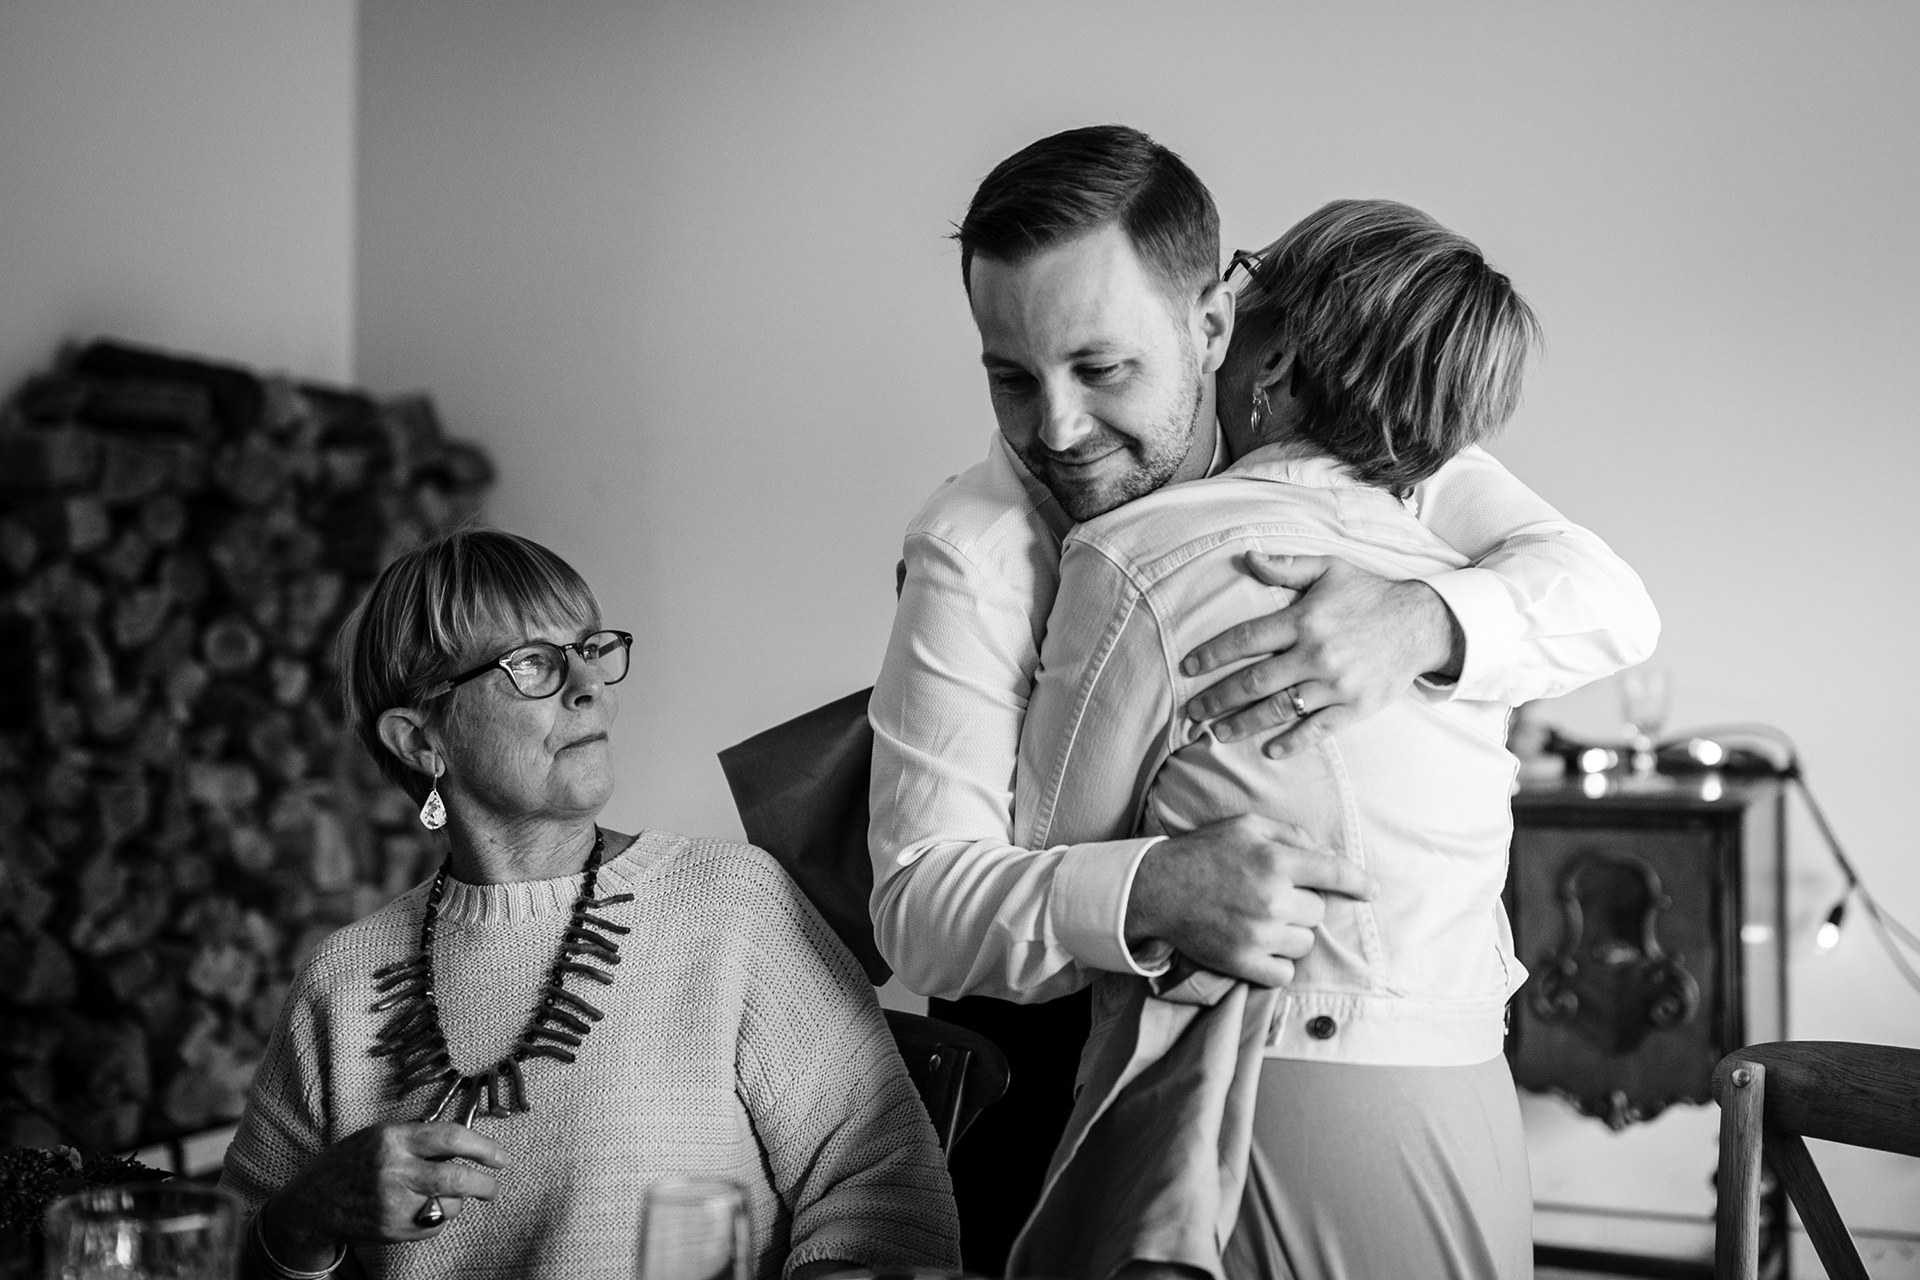 Mammoth Lakes Rental Home Wedding Pictures | The groom greets his aunt with a loving hug